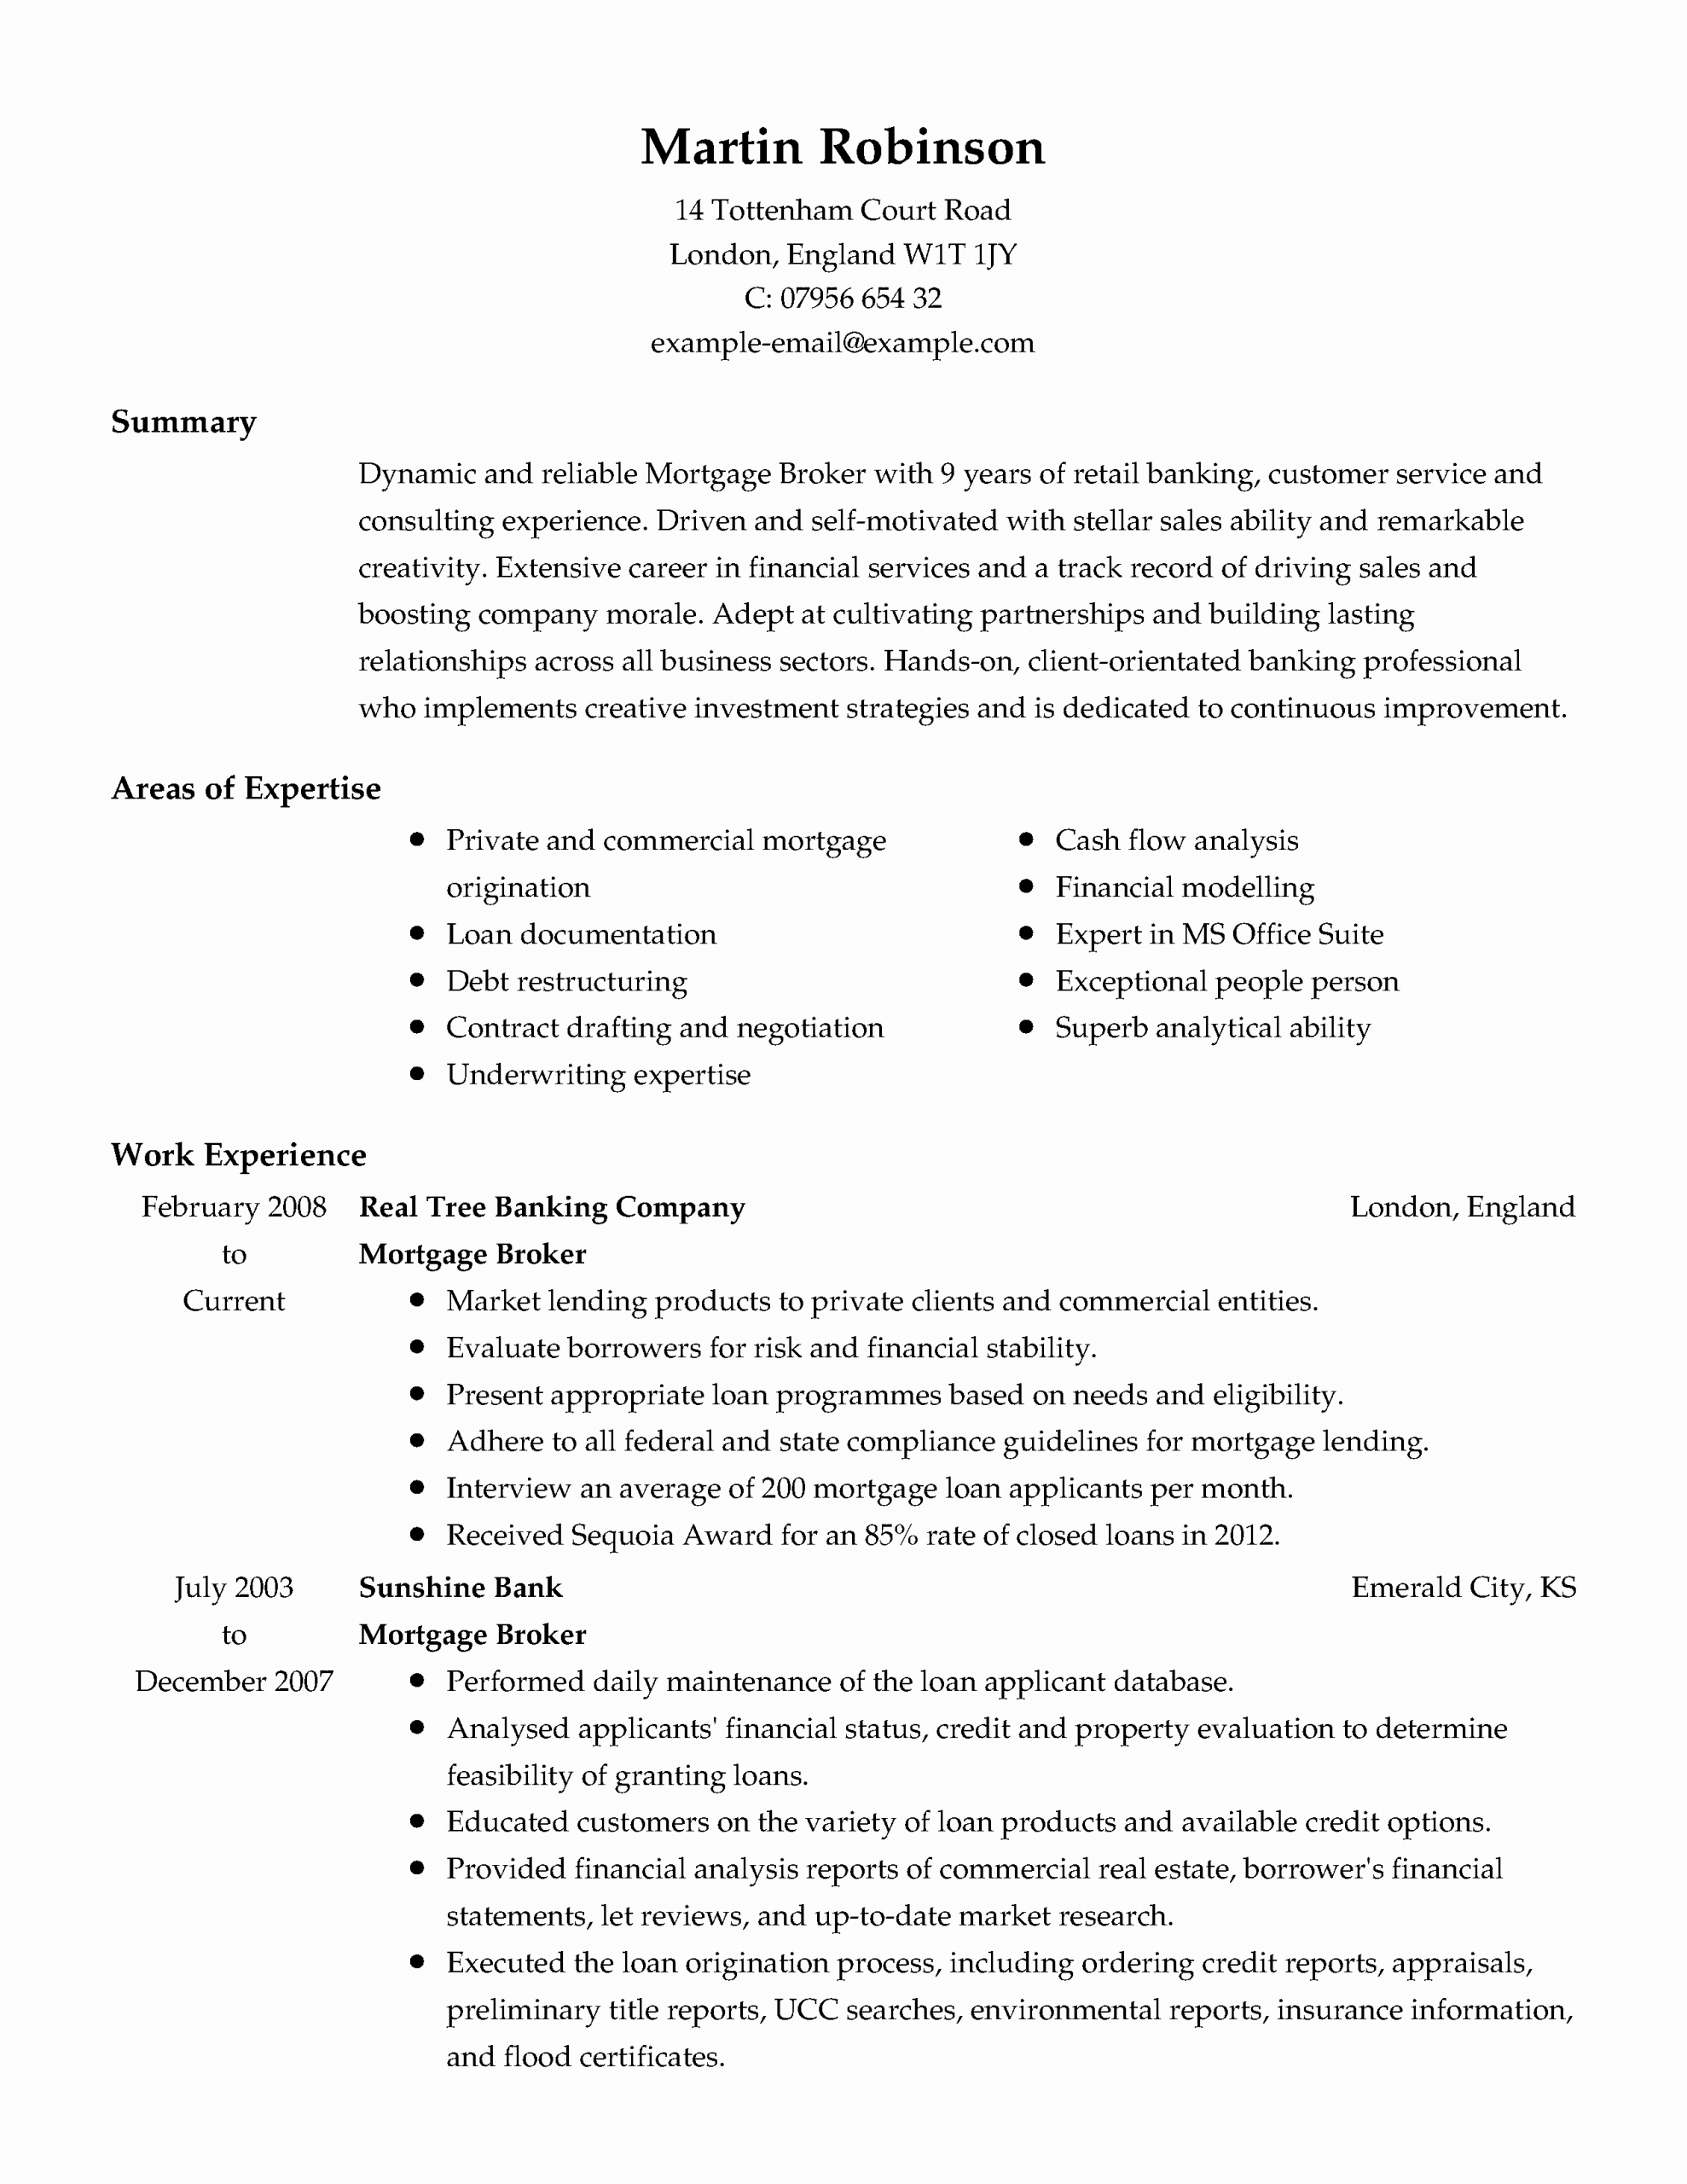 Real Estate Agent Resume Examples Inspirational Amazing Real Estate Resume Examples To Get You Hired Good Resume Examples Resume Examples Job Resume Examples